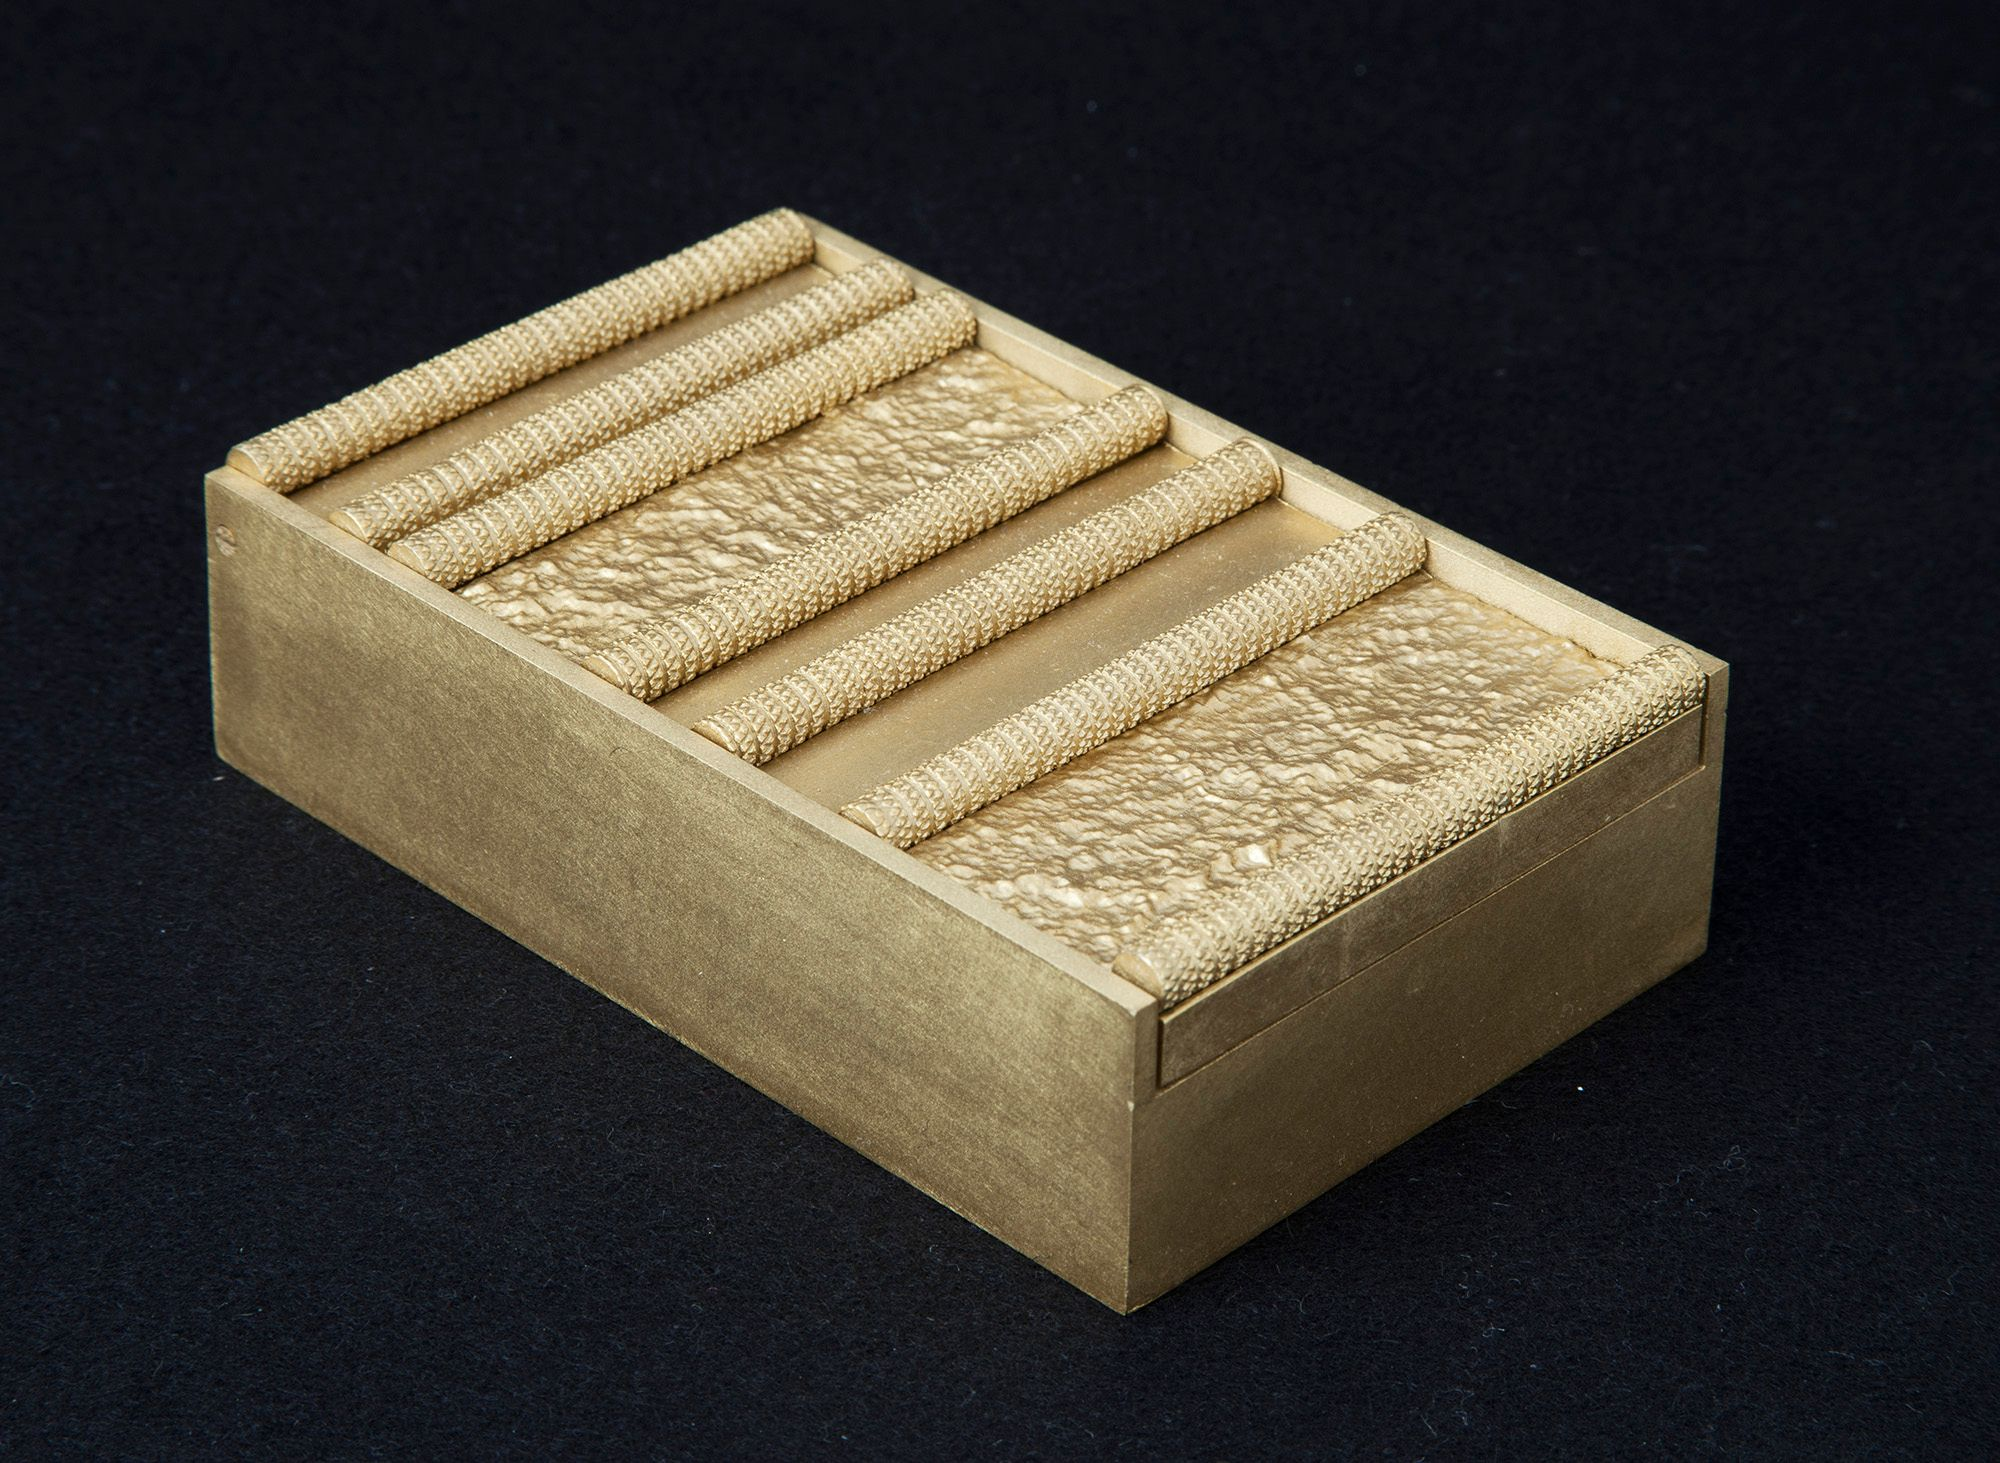 Project Image for Minature Bronze Boxes